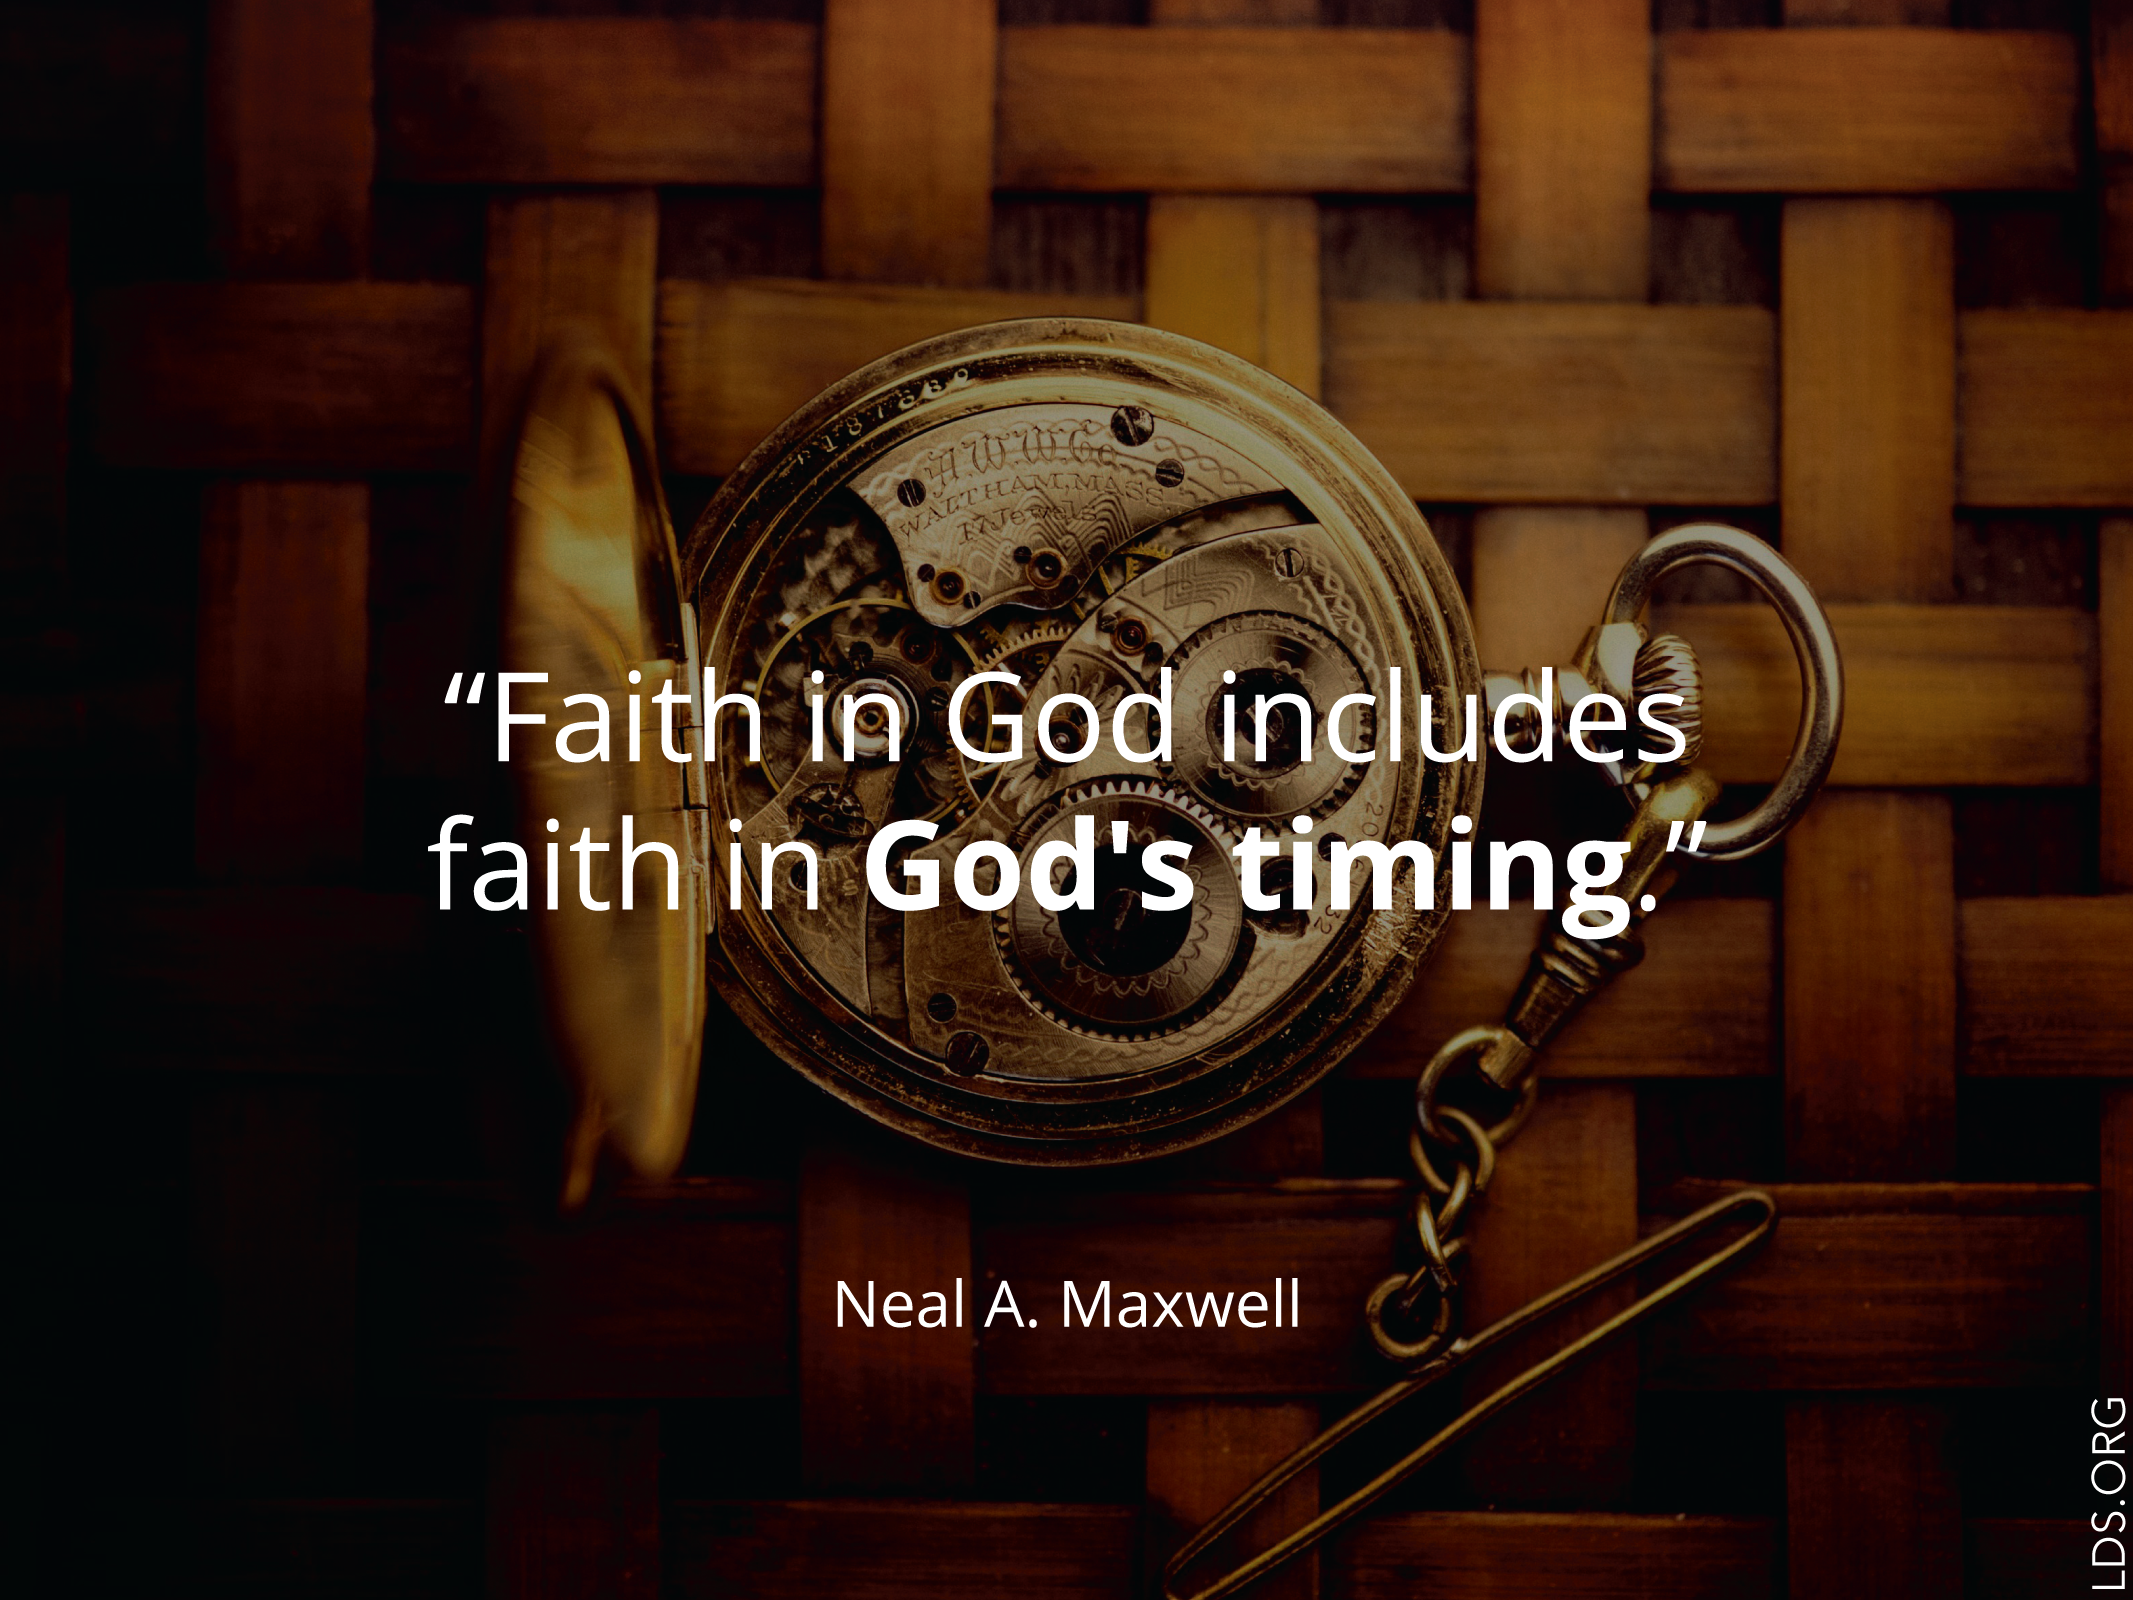 """Meme with a quote by Neal A. Maxwell reading """"Faith in God includes faith in God's timing.""""  English language.  © See Individual Images ipCode 1."""